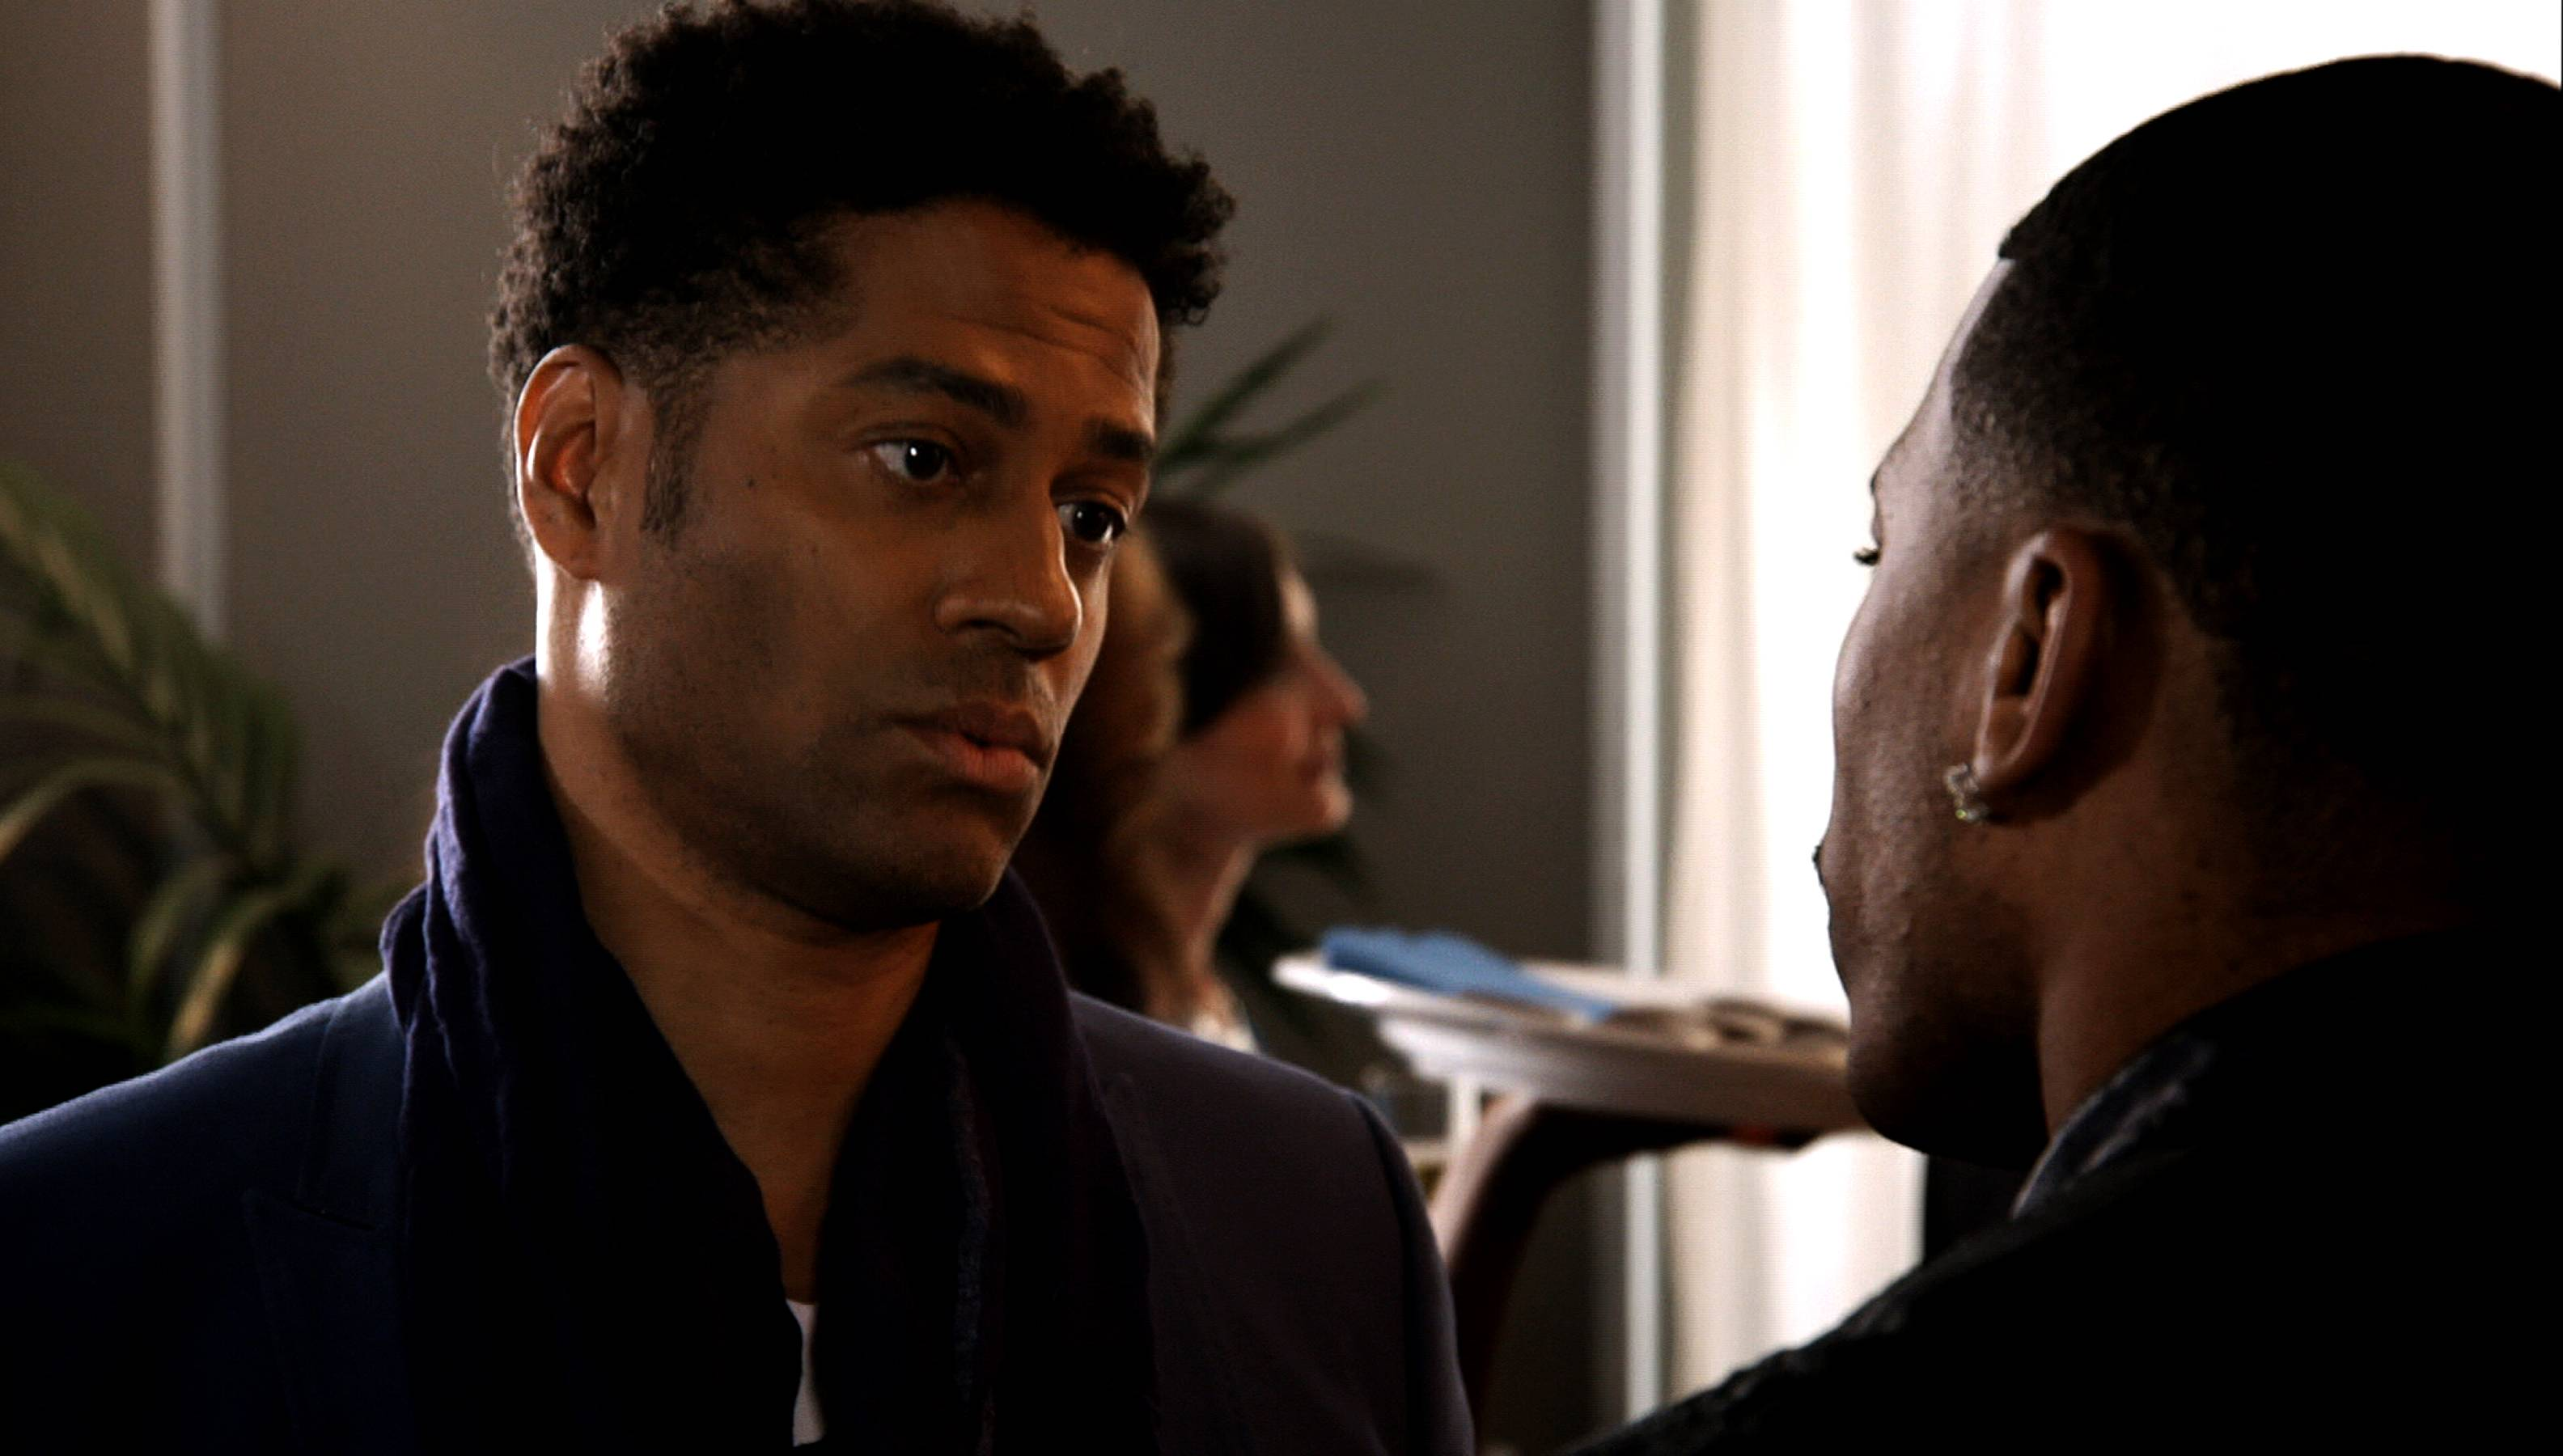 Benet's Business - Eric Benet strikes up some business with Nelly. Little does Nelly know that this business proposition might be a bit difficult to fulfill.(Photo: BET)